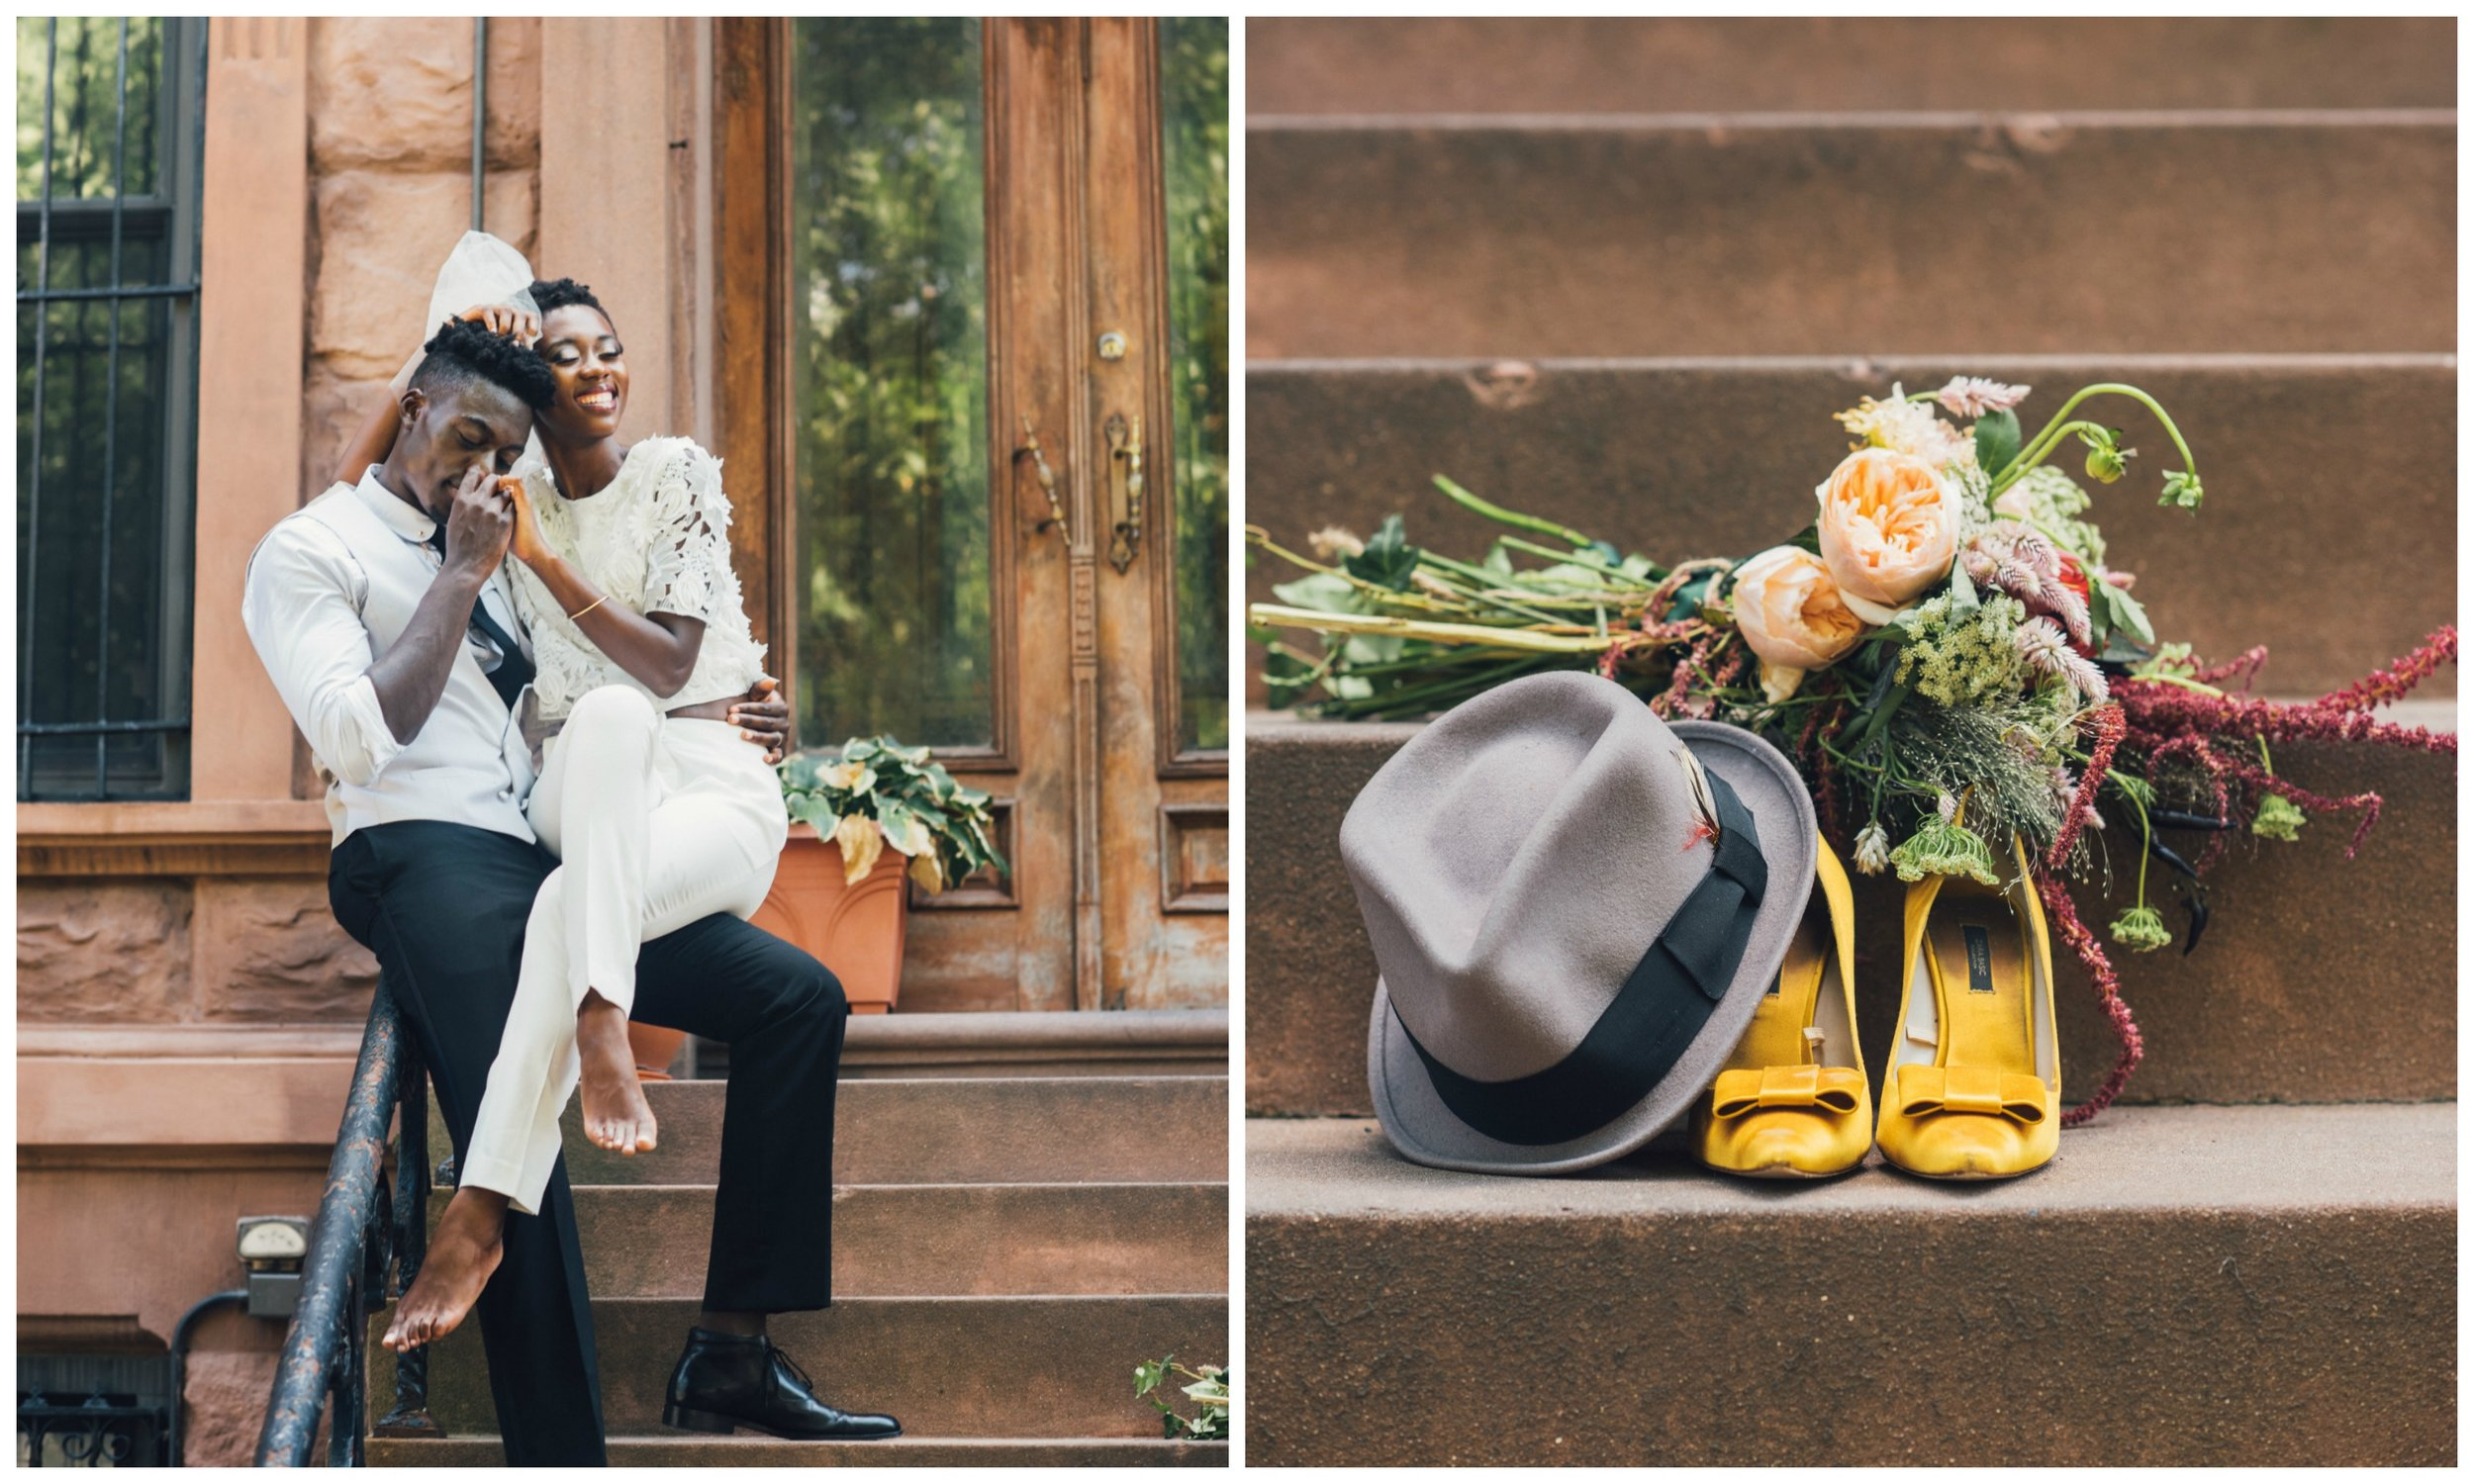 stitch - BROOKLYN BRIDE - INTIMATE WEDDING PHOTOGRAPHER - TWOTWENTY by CHI-CHI AGBIM 7.jpg